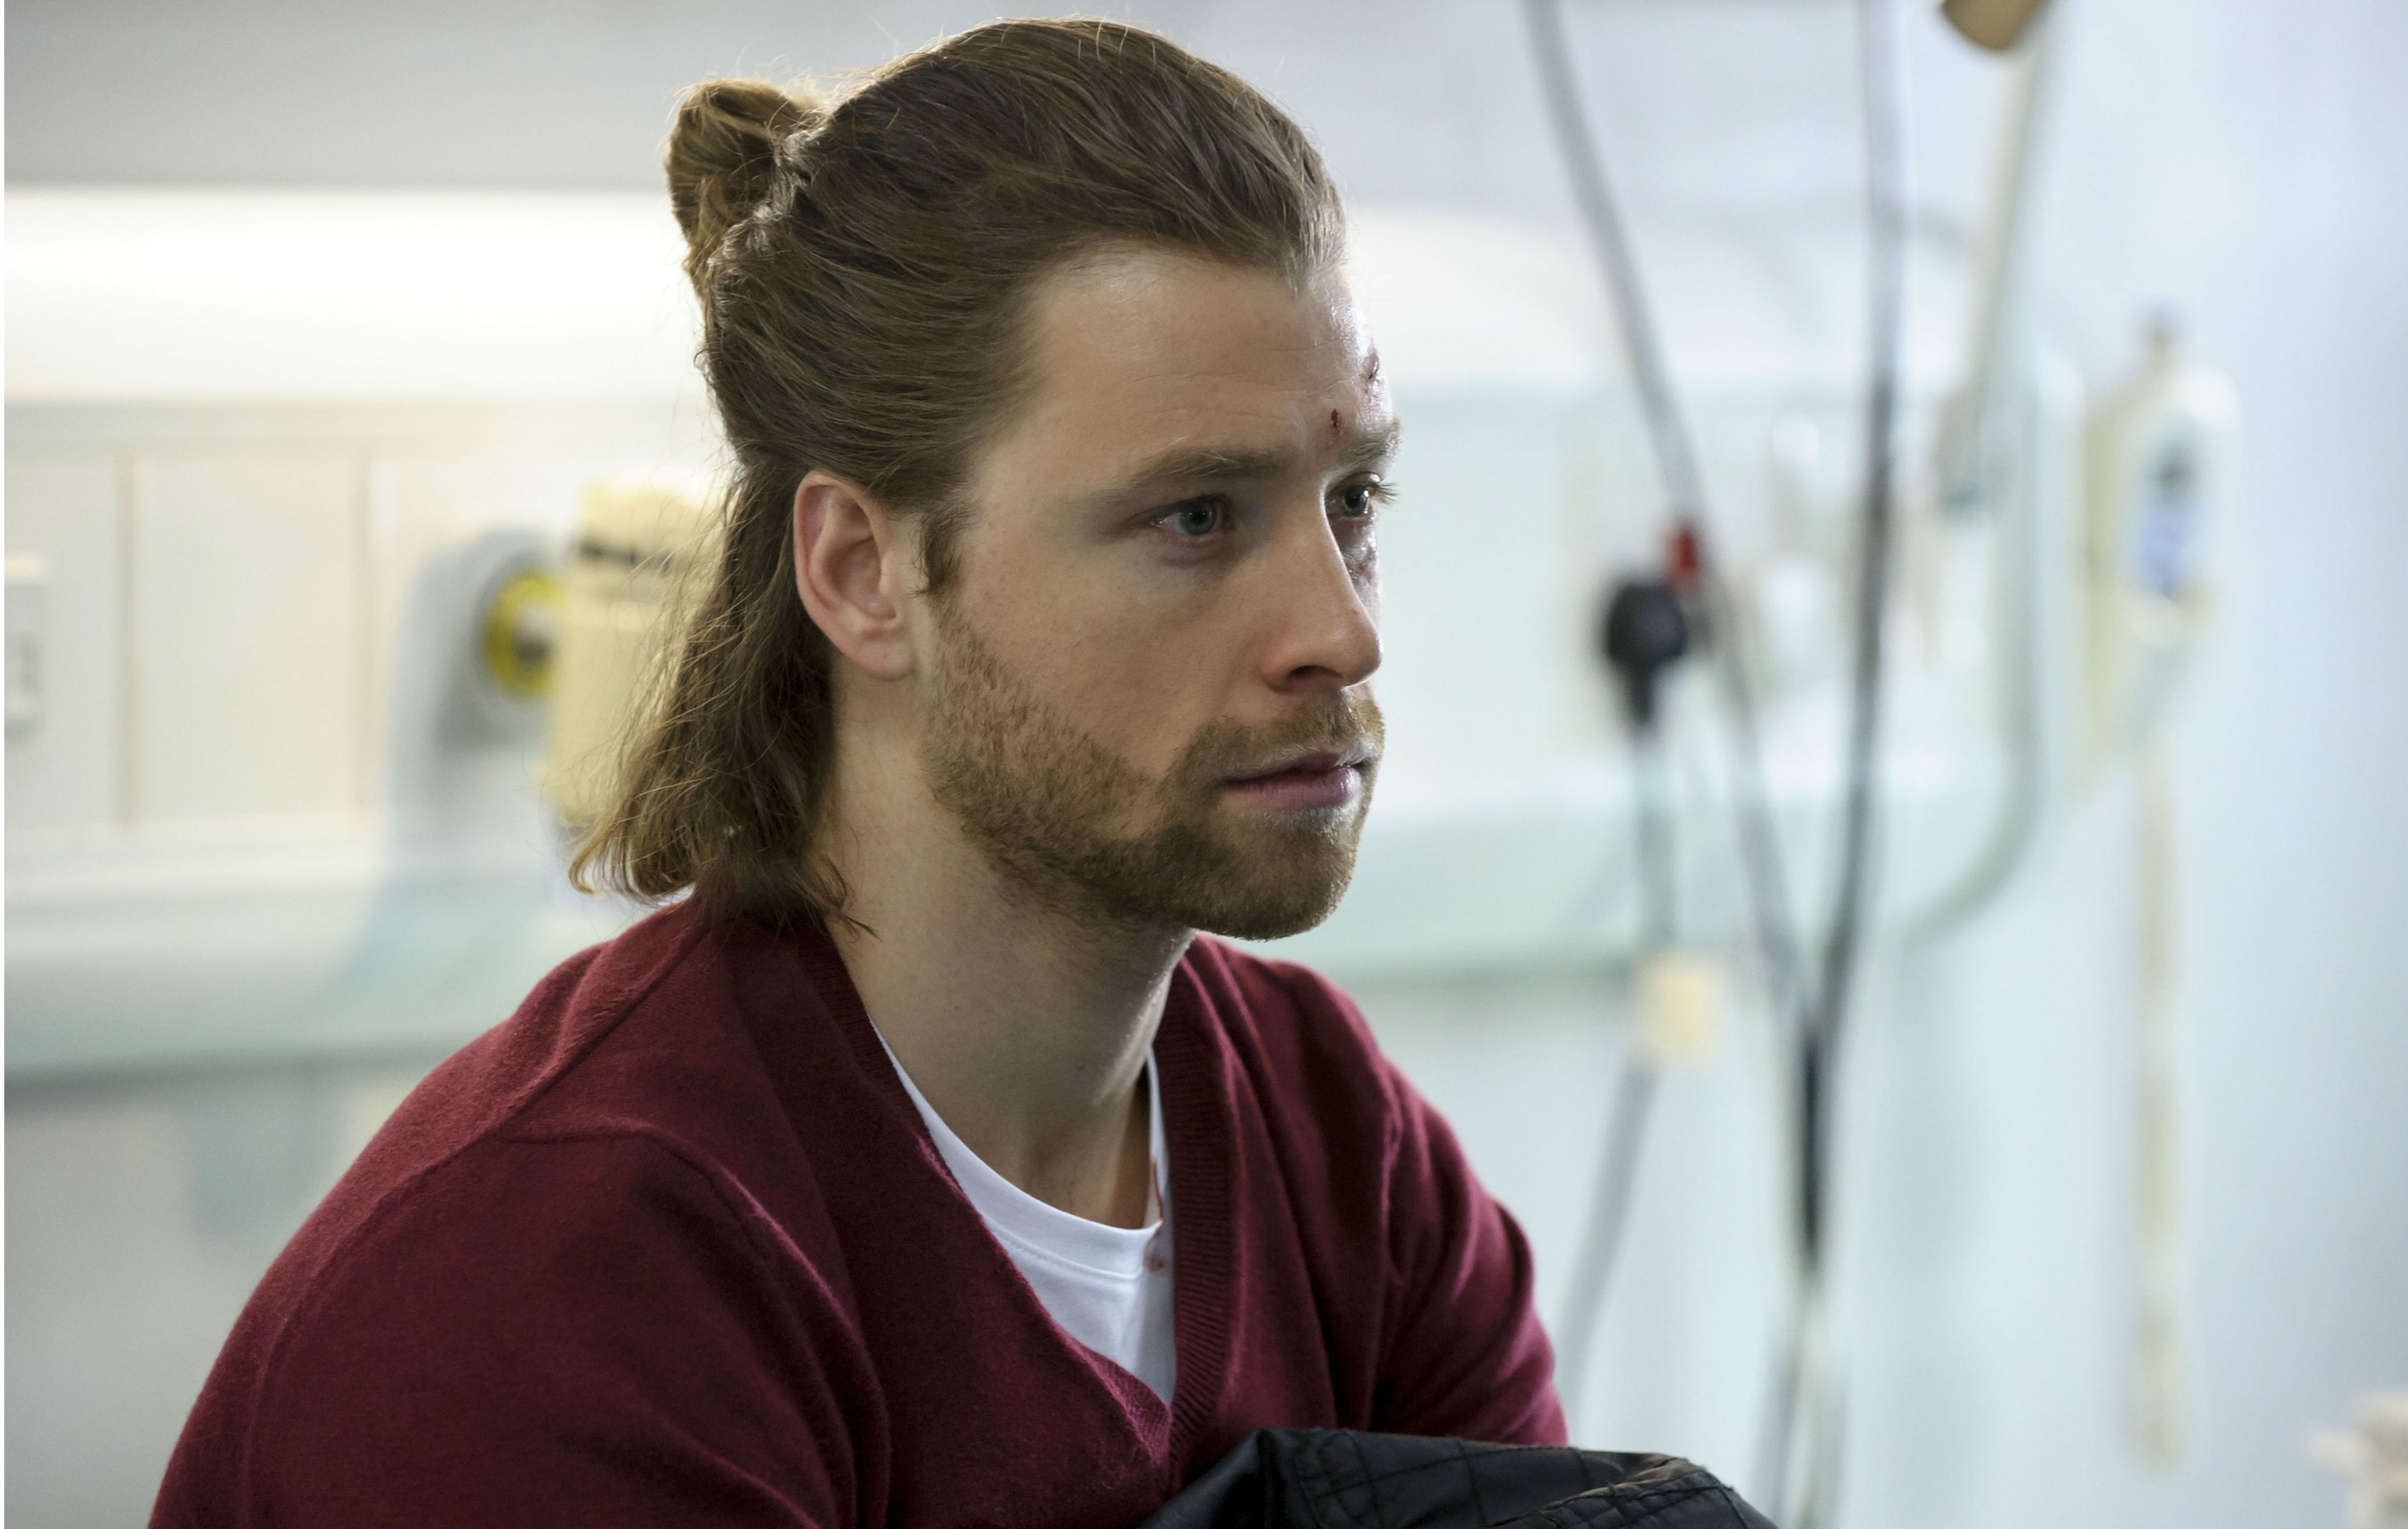 Former Skins star Mitch Hewer joins cast of Casualty